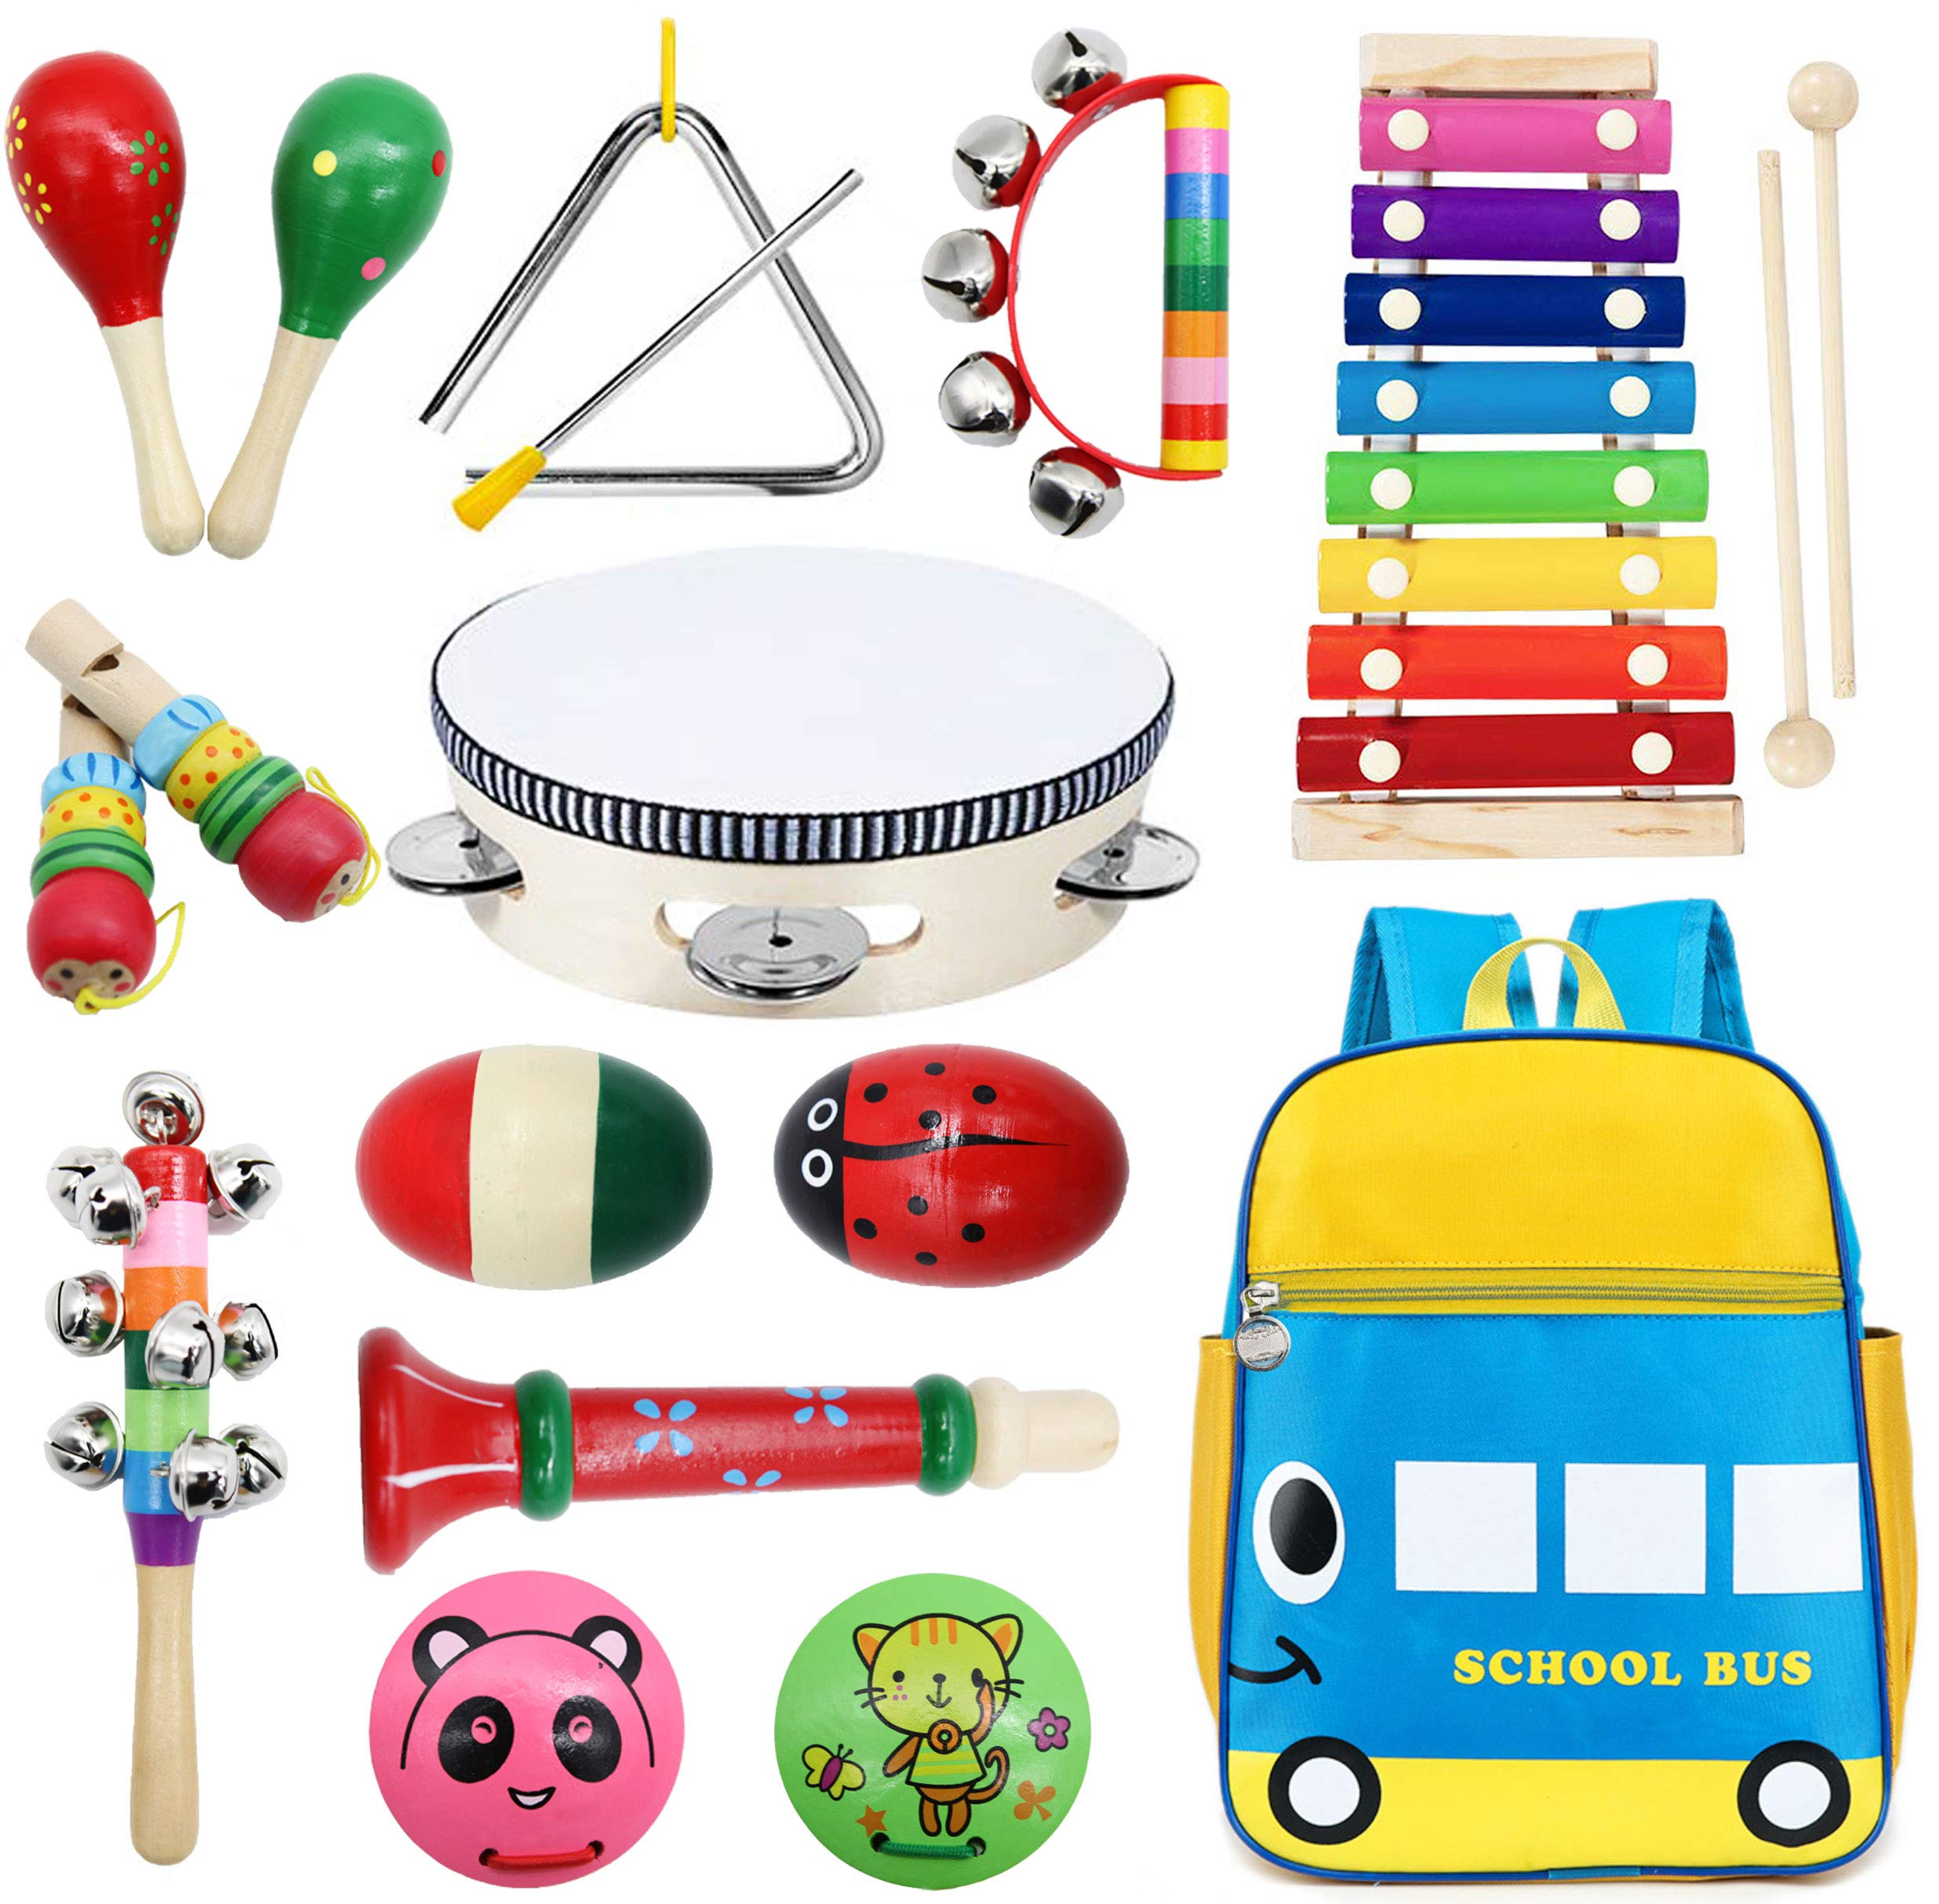 Toddler Musical Instruments Set Wooden Percussion Instruments Tambourine Xylophone Egg Shaker Maracas for Kids Preschool Education Early Learning Musical Toys for Boys Girls with Storage Backpack